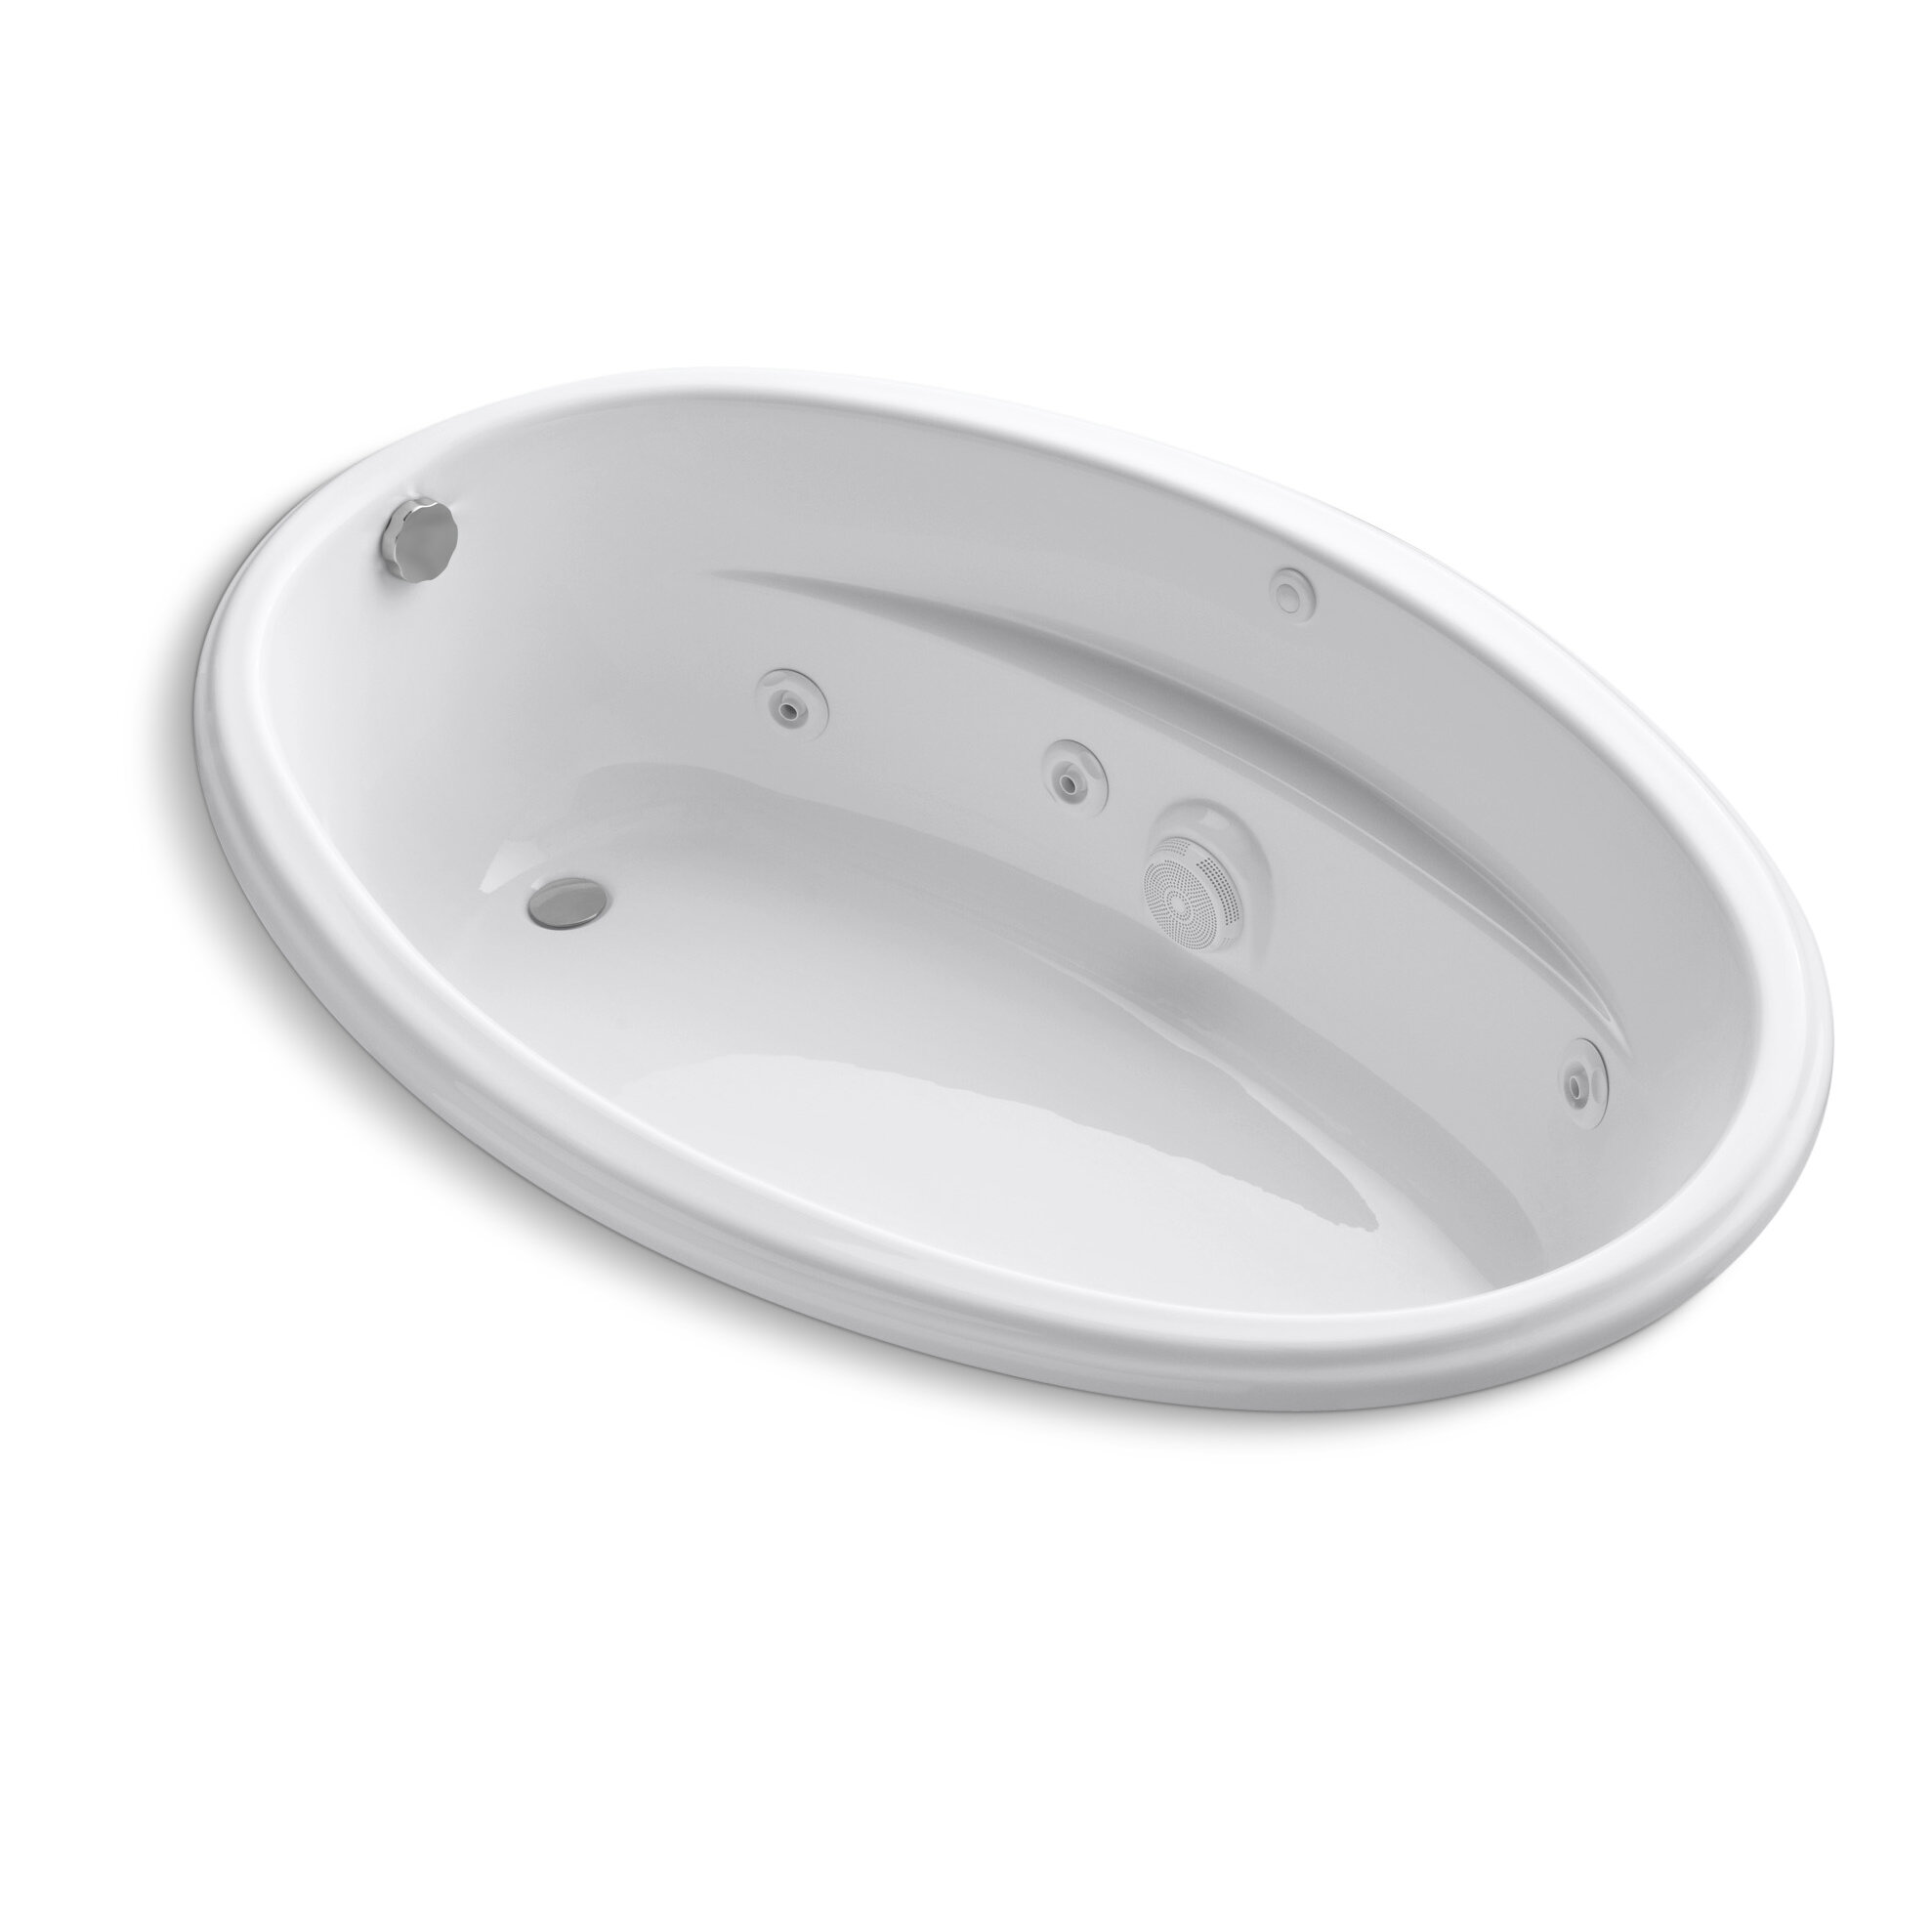 double product iron bathtub garden home cast slipper overstock today shipping free inch x clawfoot